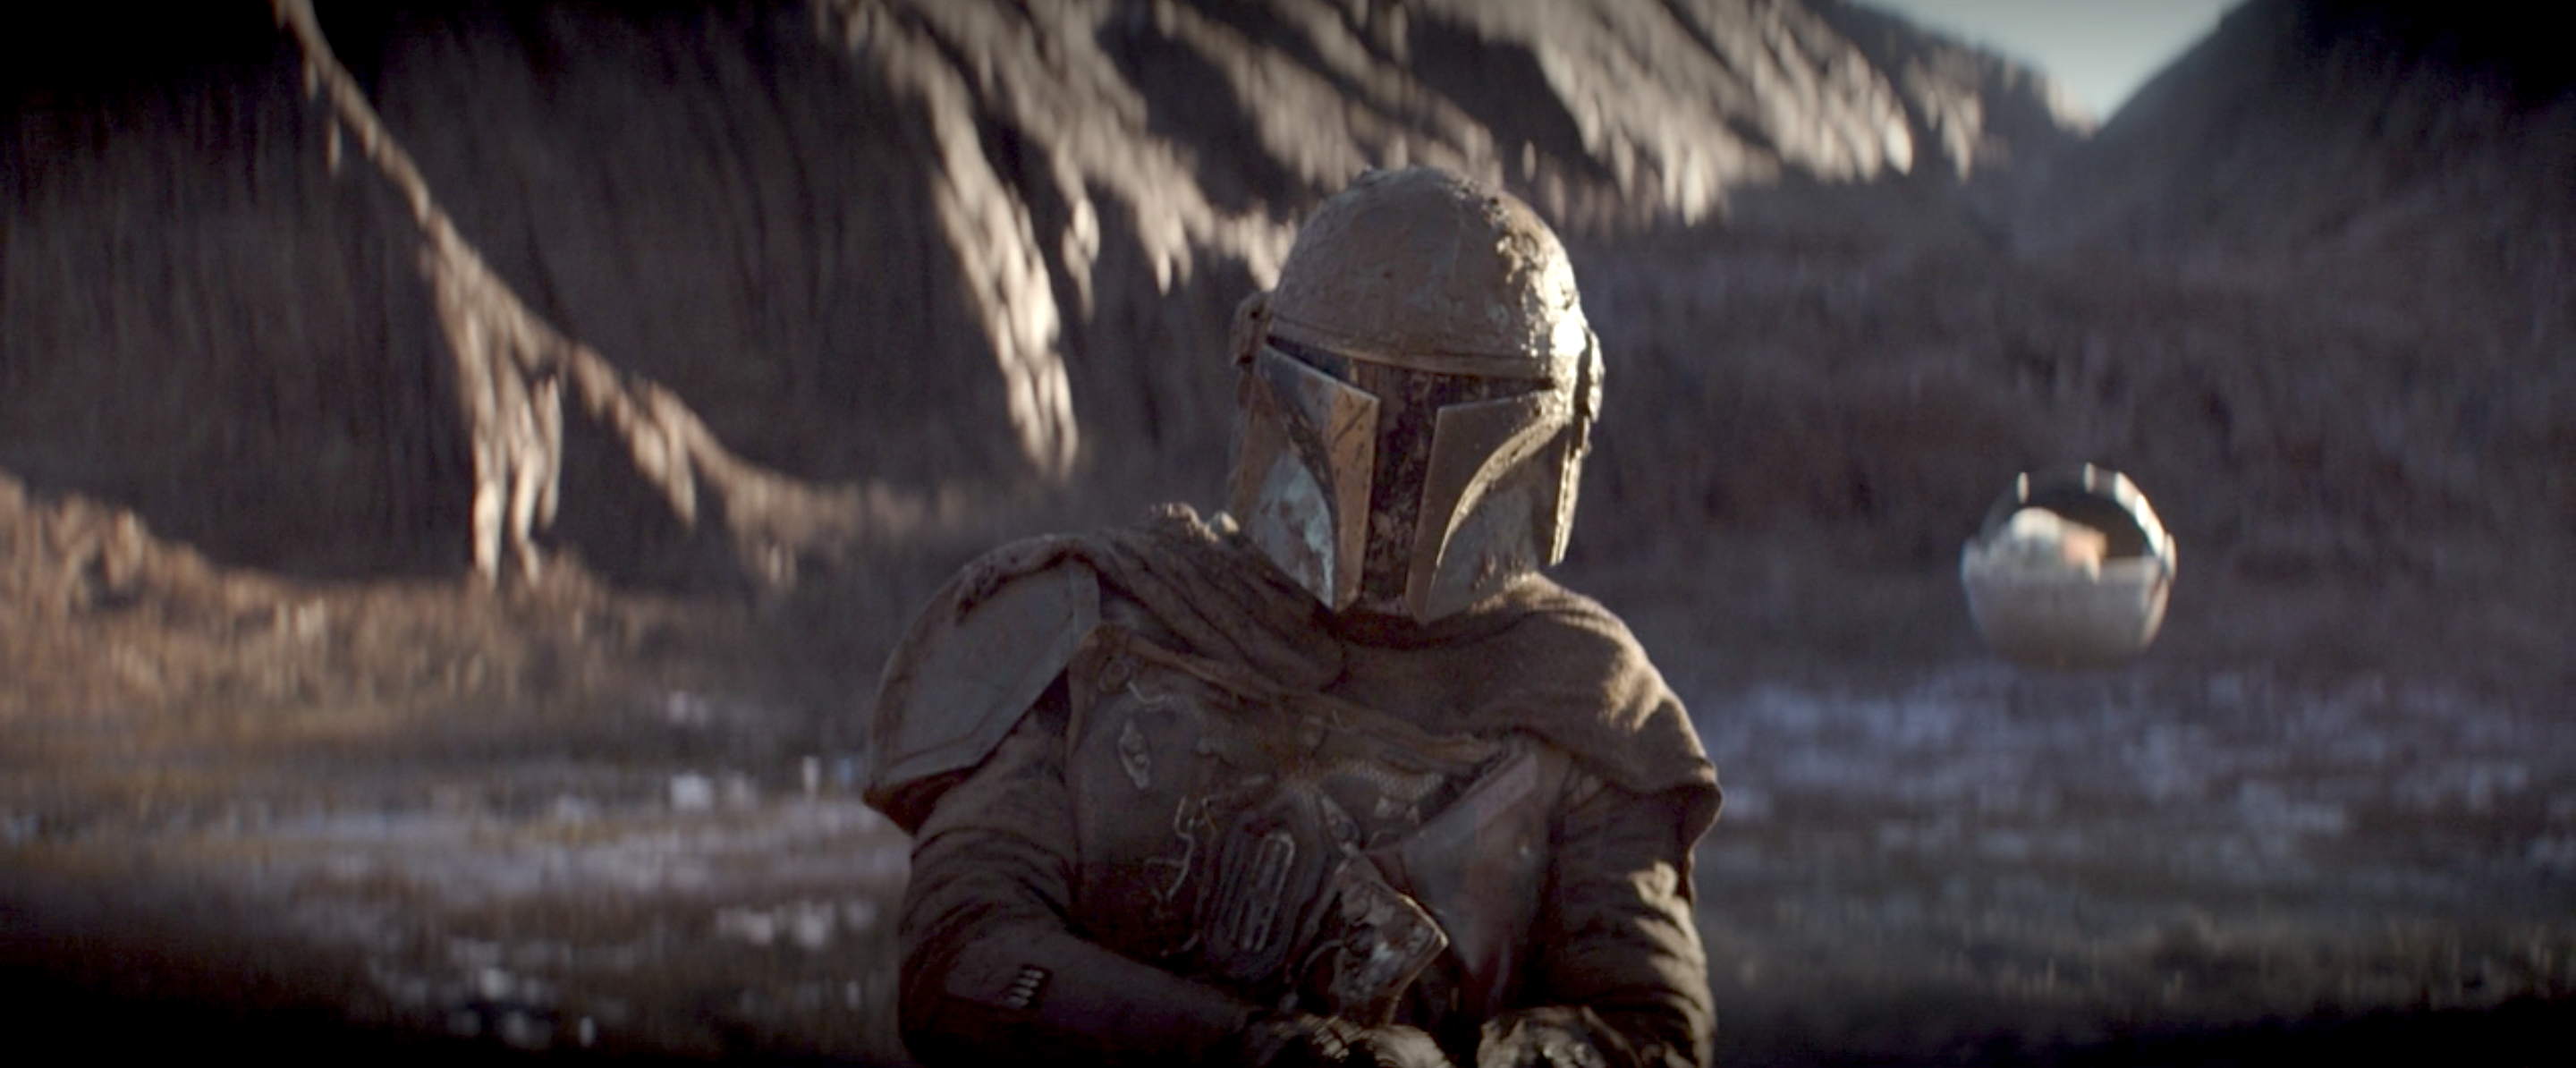 This Mandalorian theory could have huge consequences for Star Wars canon